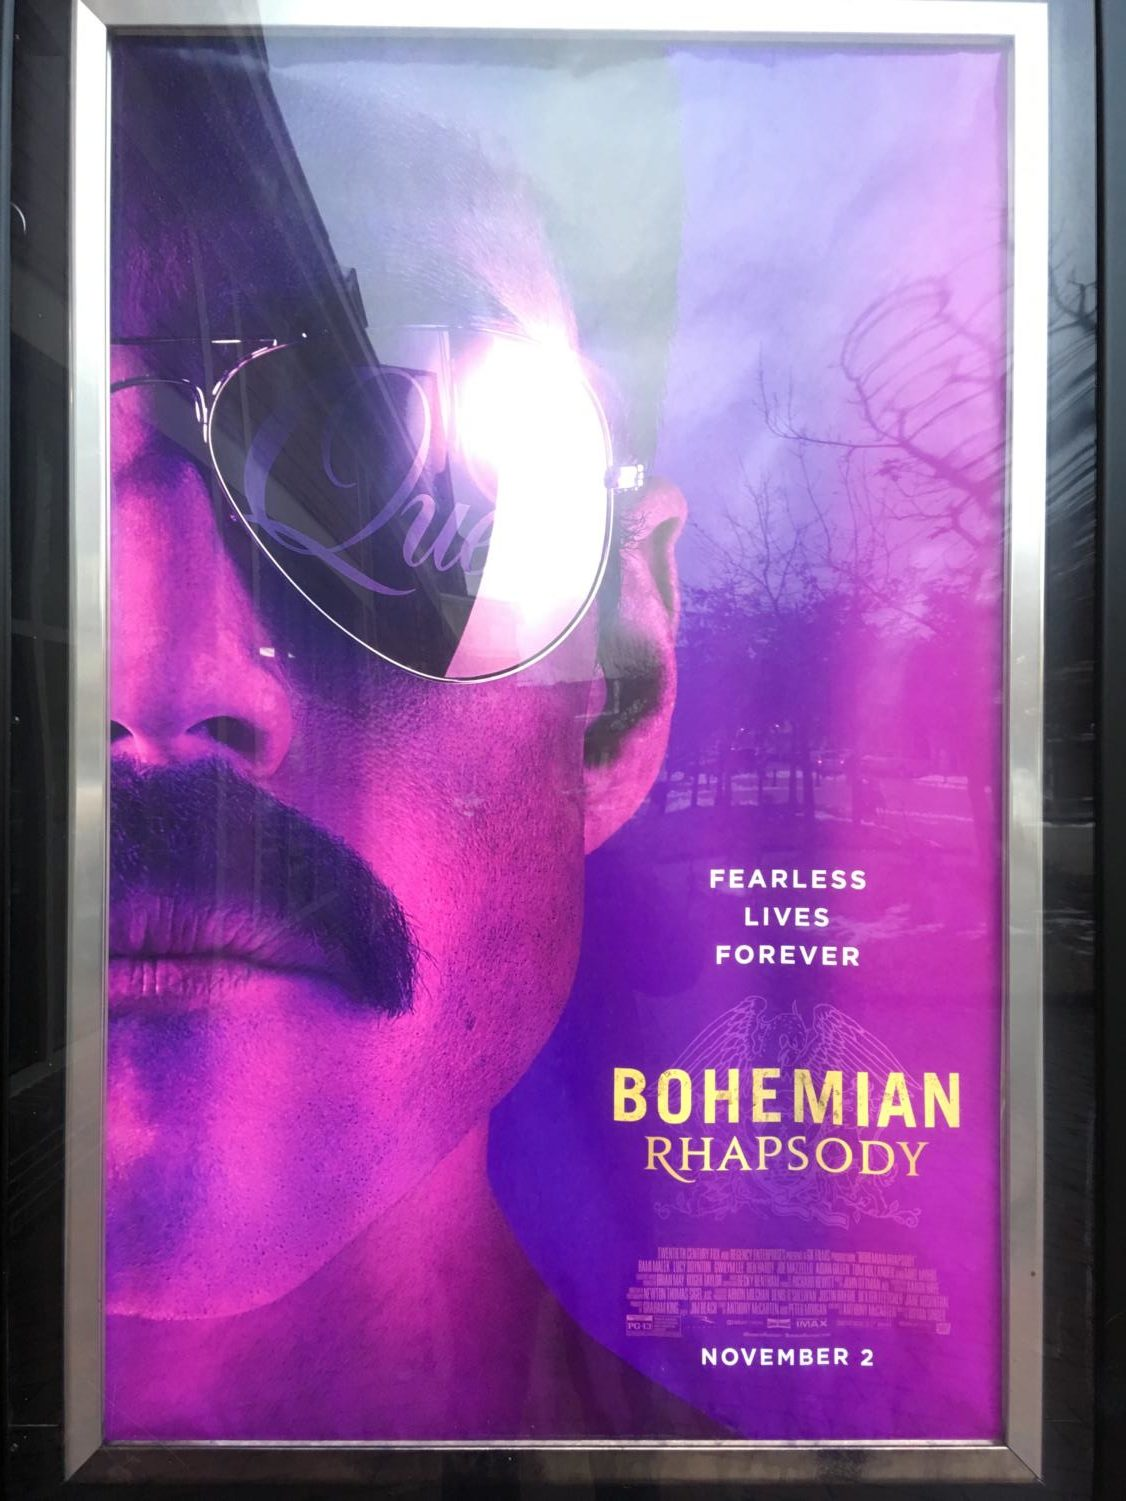 Bohemian Rhapsody is quickly rising in popularity and can be seen in all theatres in Williamsburg.